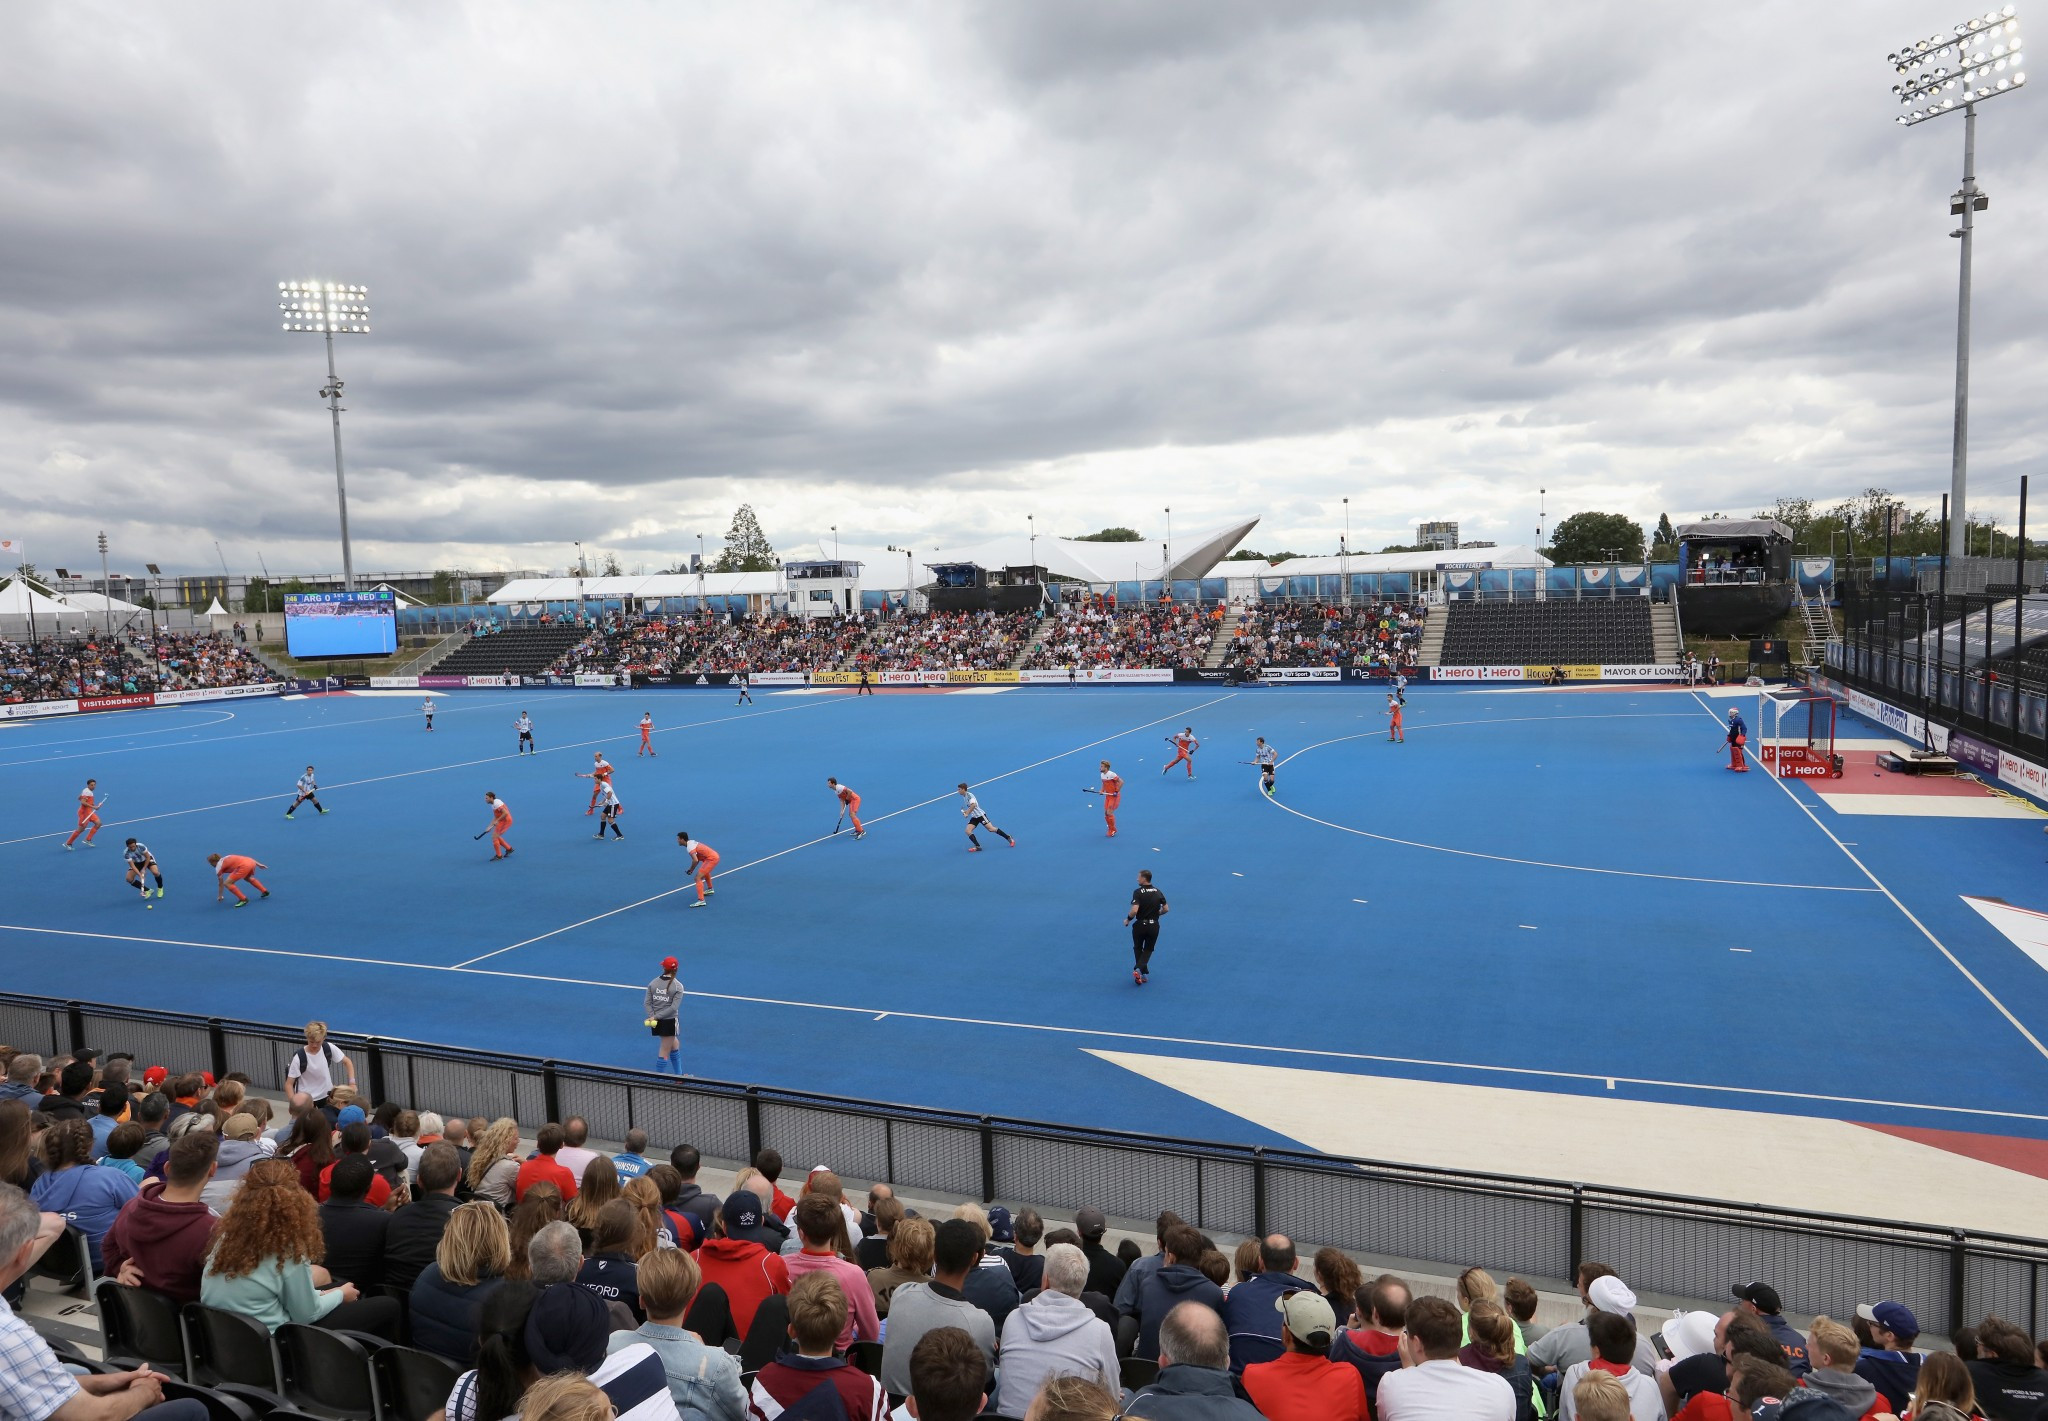 FIH and England Hockey launch public ticket ballot for 2018 World Cup